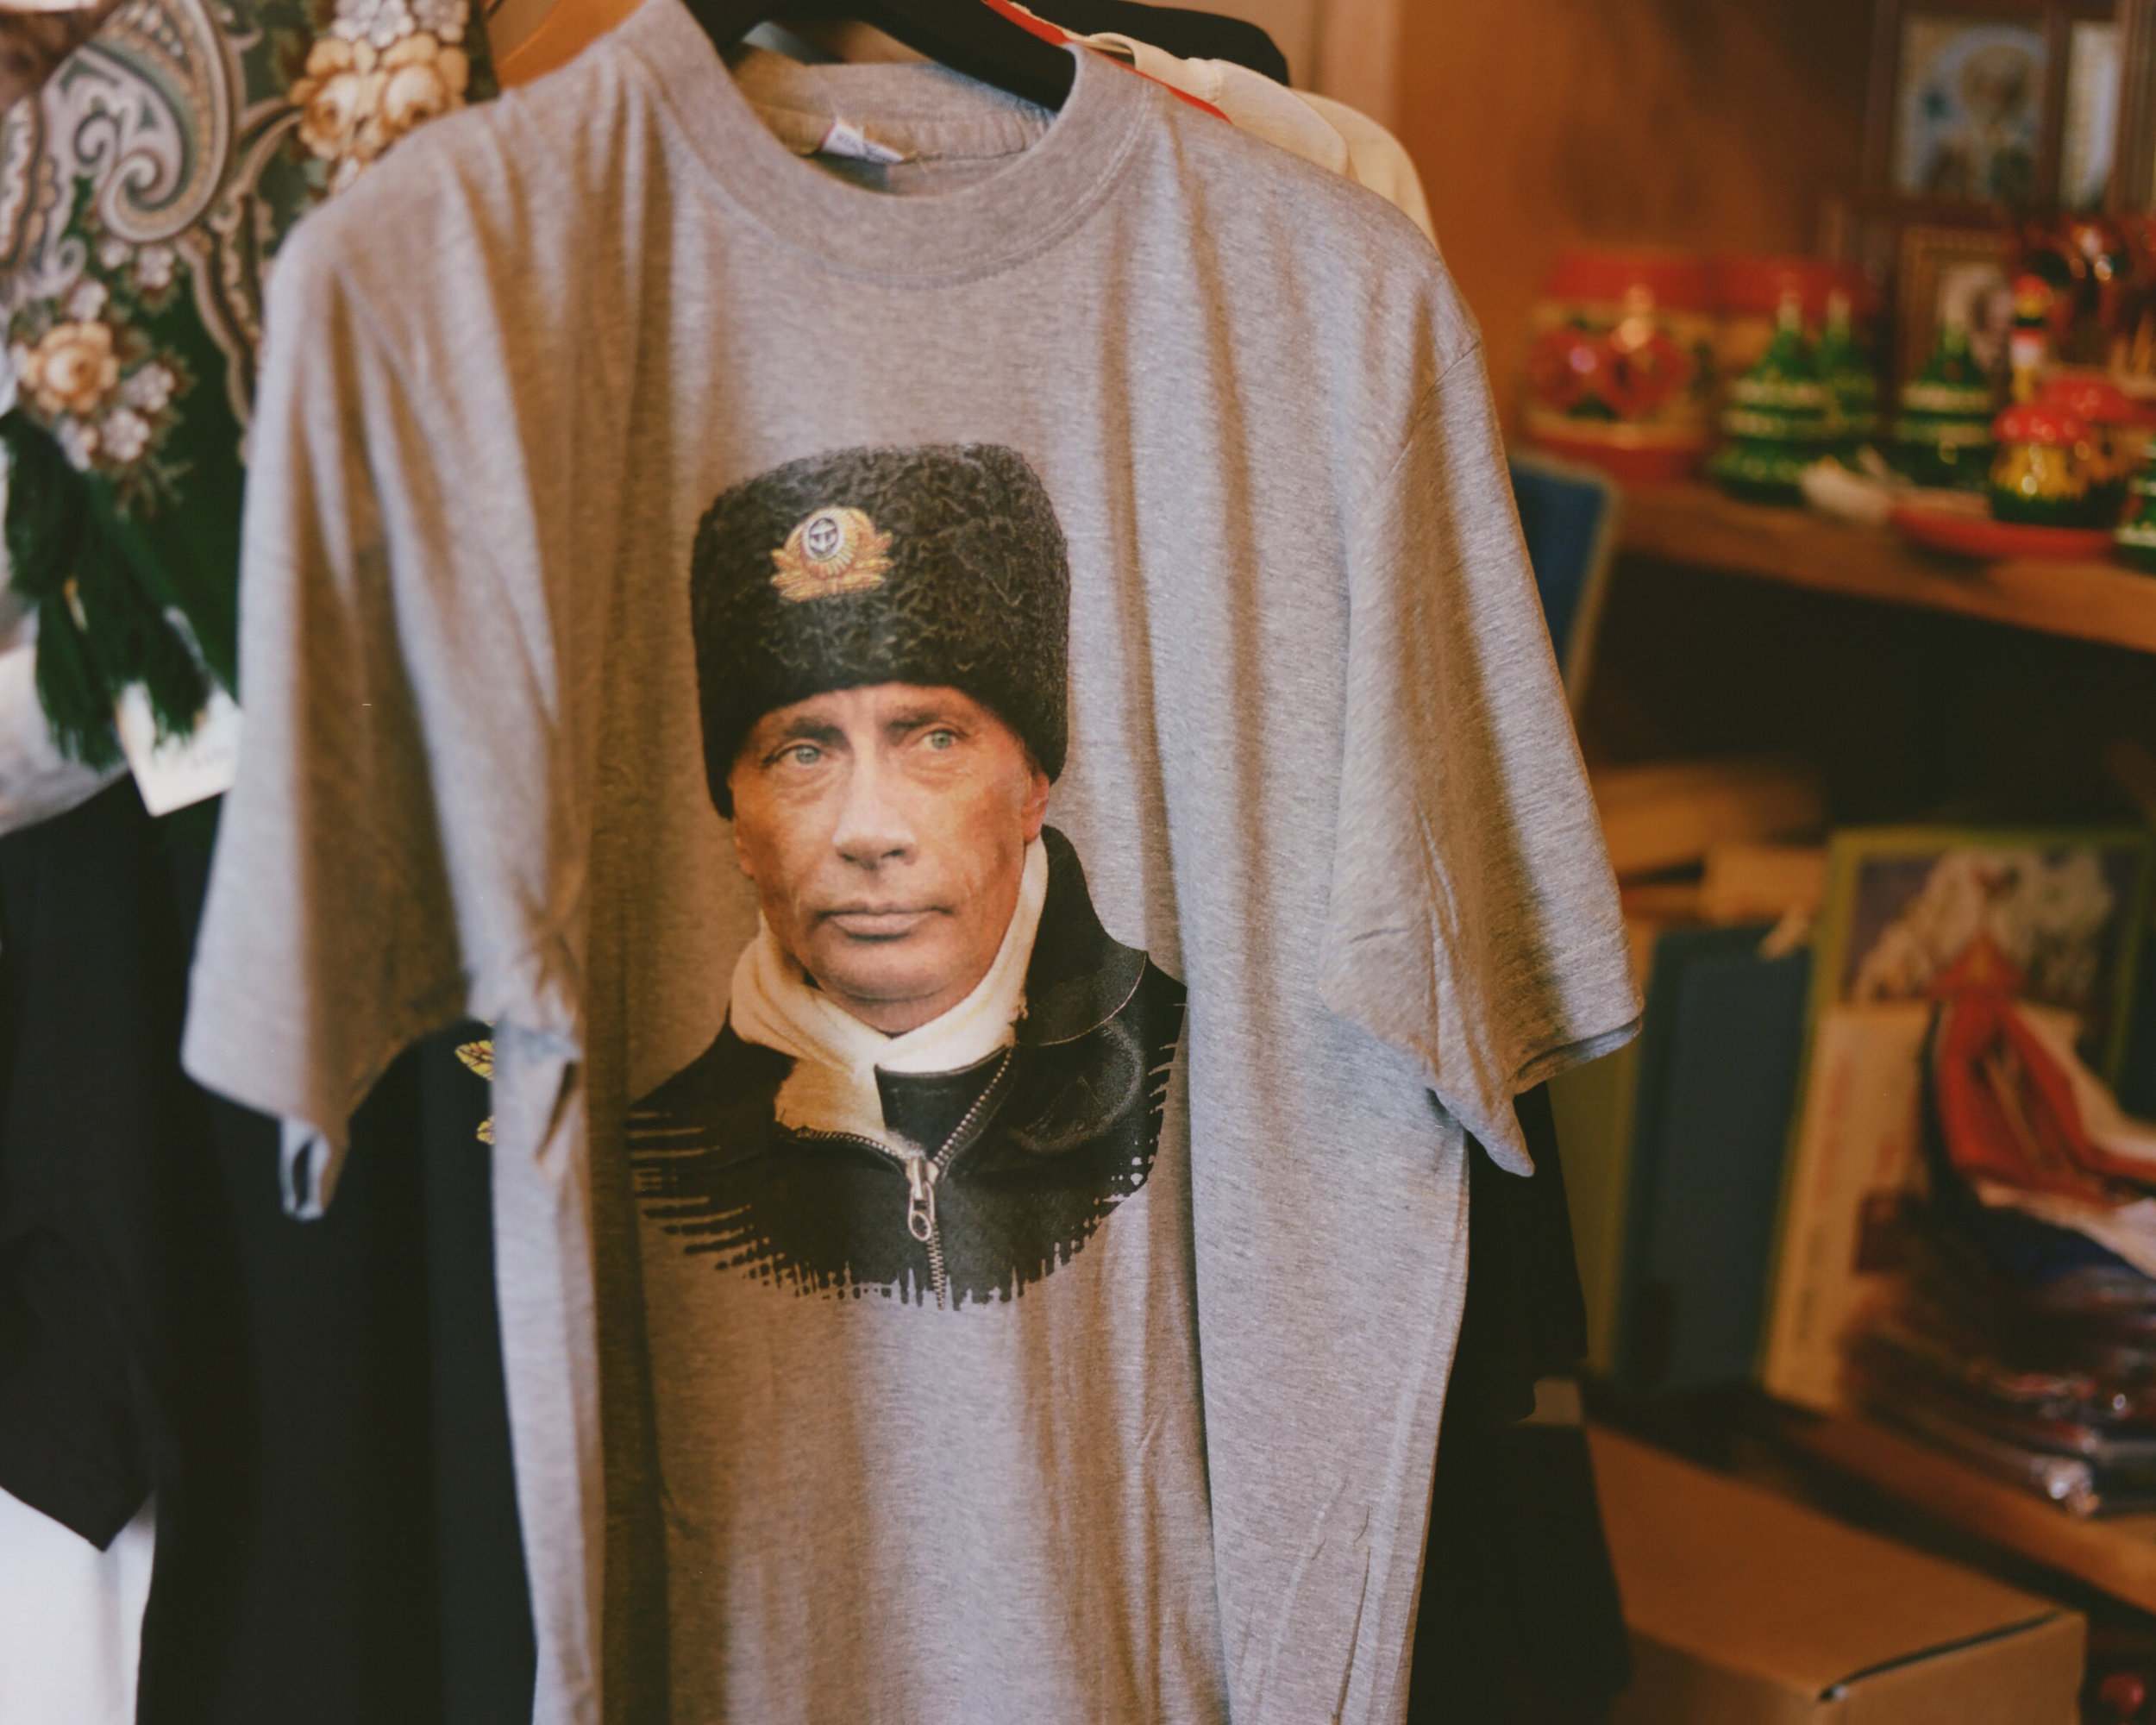 In the gift shop at the Norwegian/Russian border.